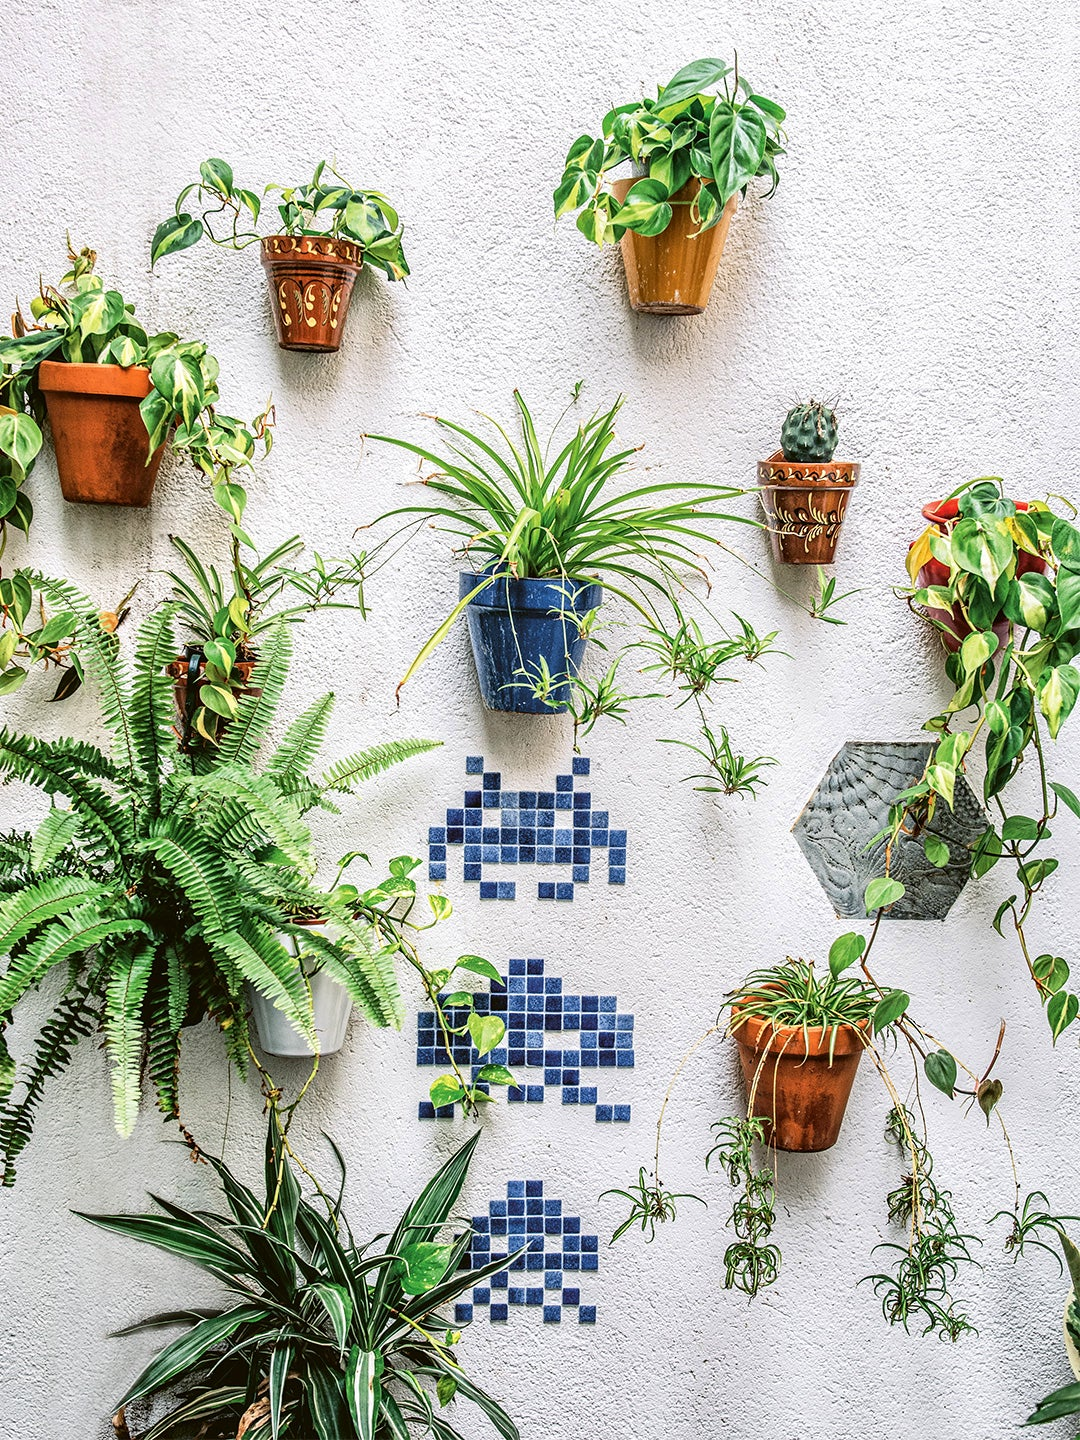 stone wall covered with mounted planters